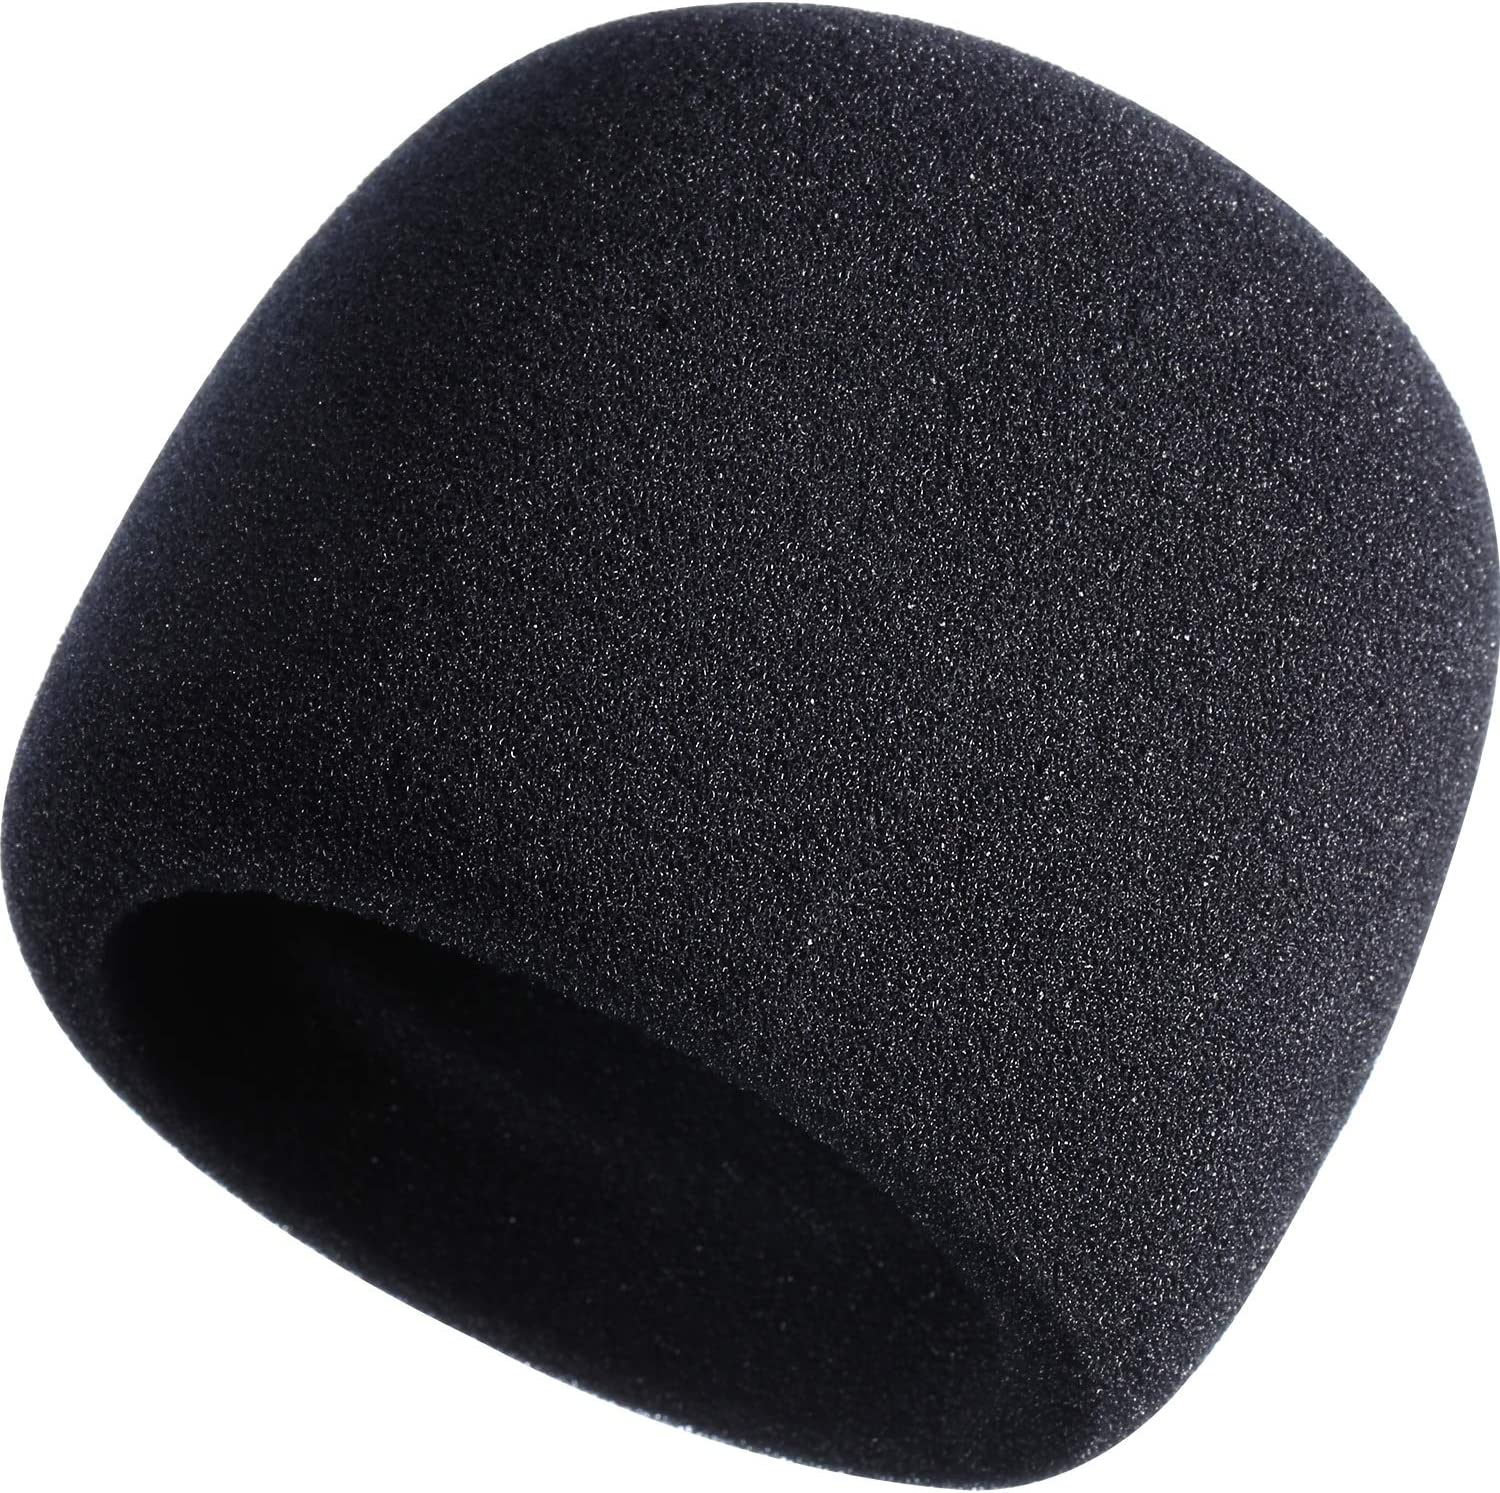 Mic Cover Foam Microphone Windscreen for Pro Con Yeti Blue free shipping Jacksonville Mall